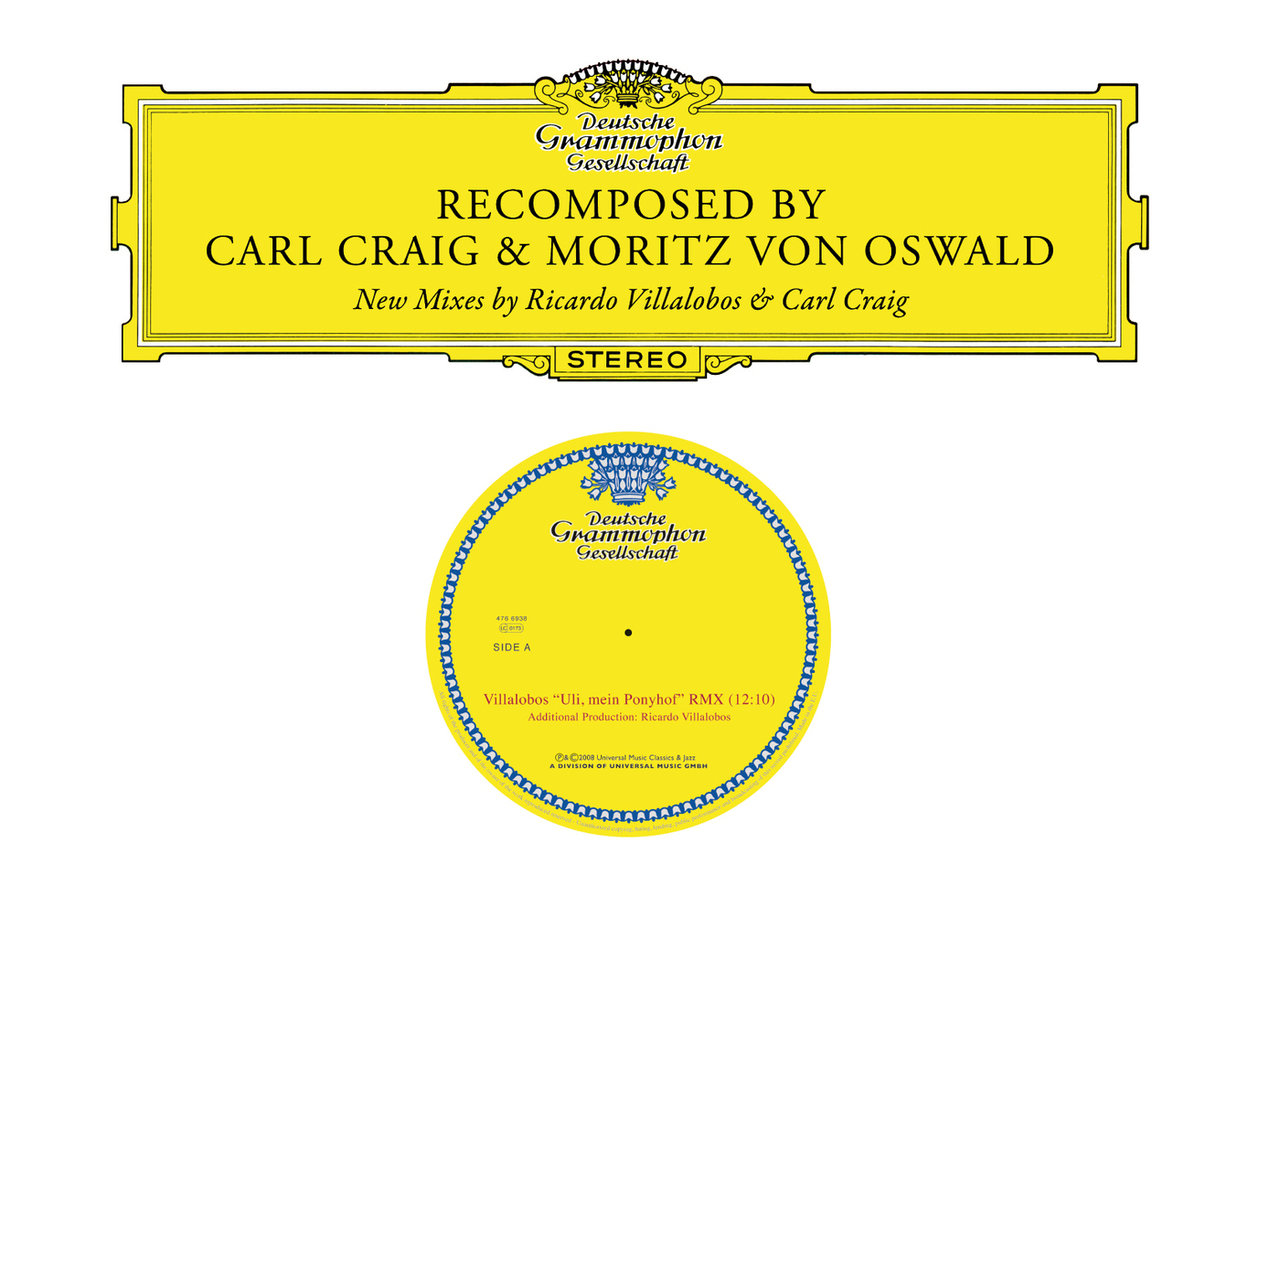 ReComposed by Carl Craig & Moritz von Oswald (eVersion)